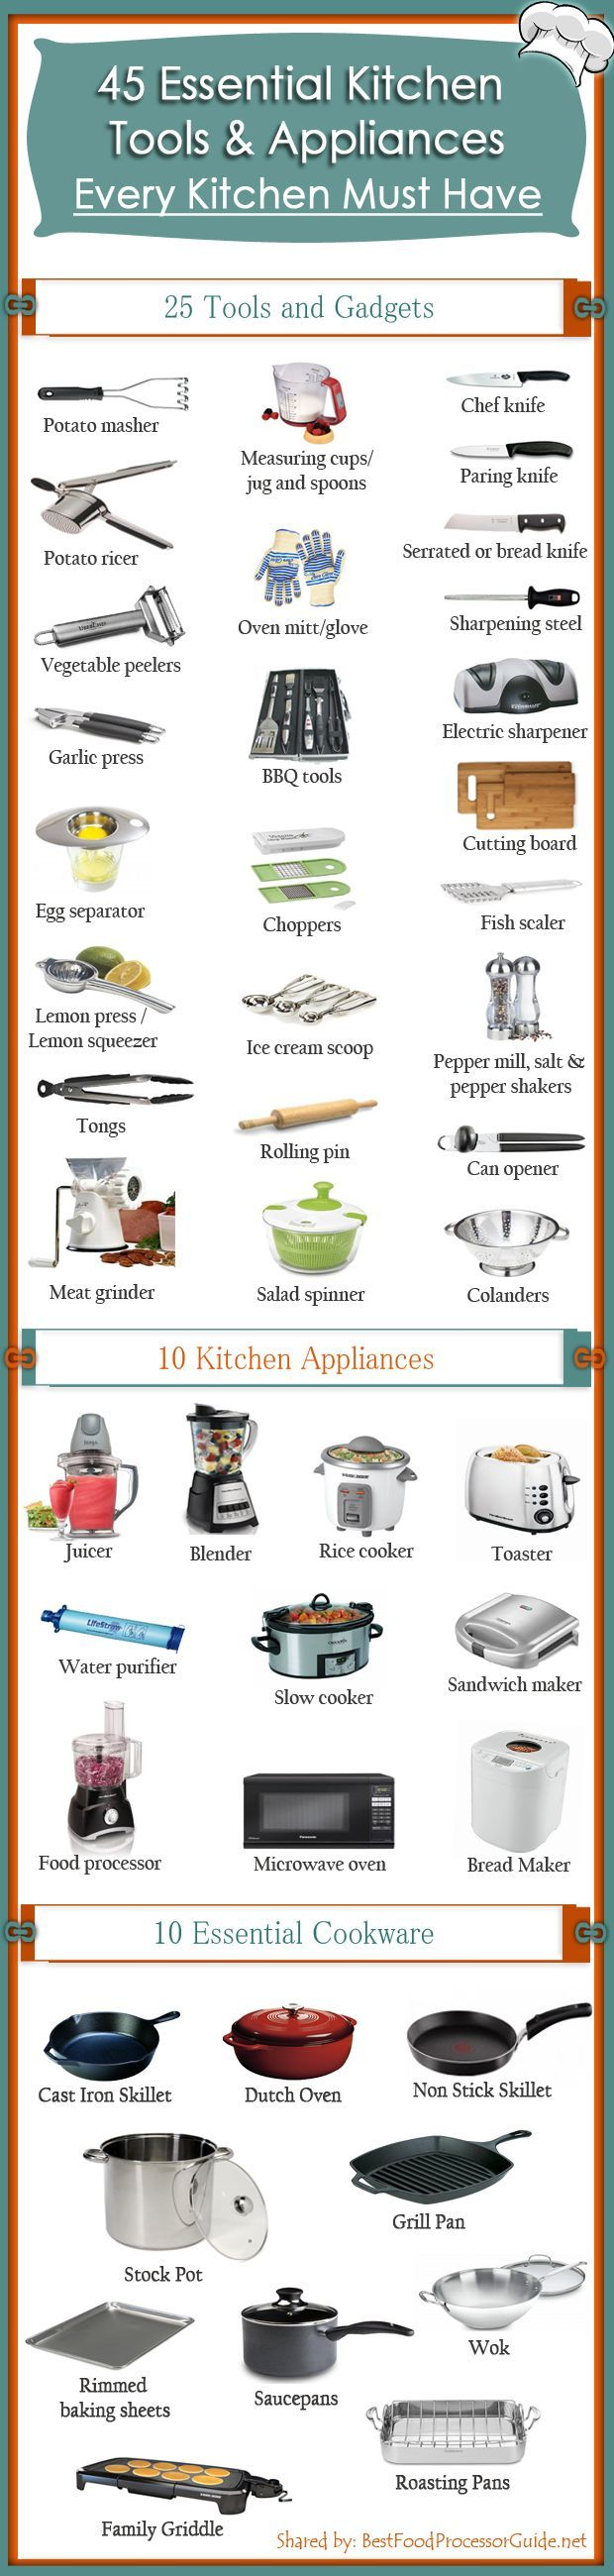 Uncategorized Trade In Kitchen Appliances 45 essential kitchen tools and appliances every must have designed by bdhire com shopping pinter